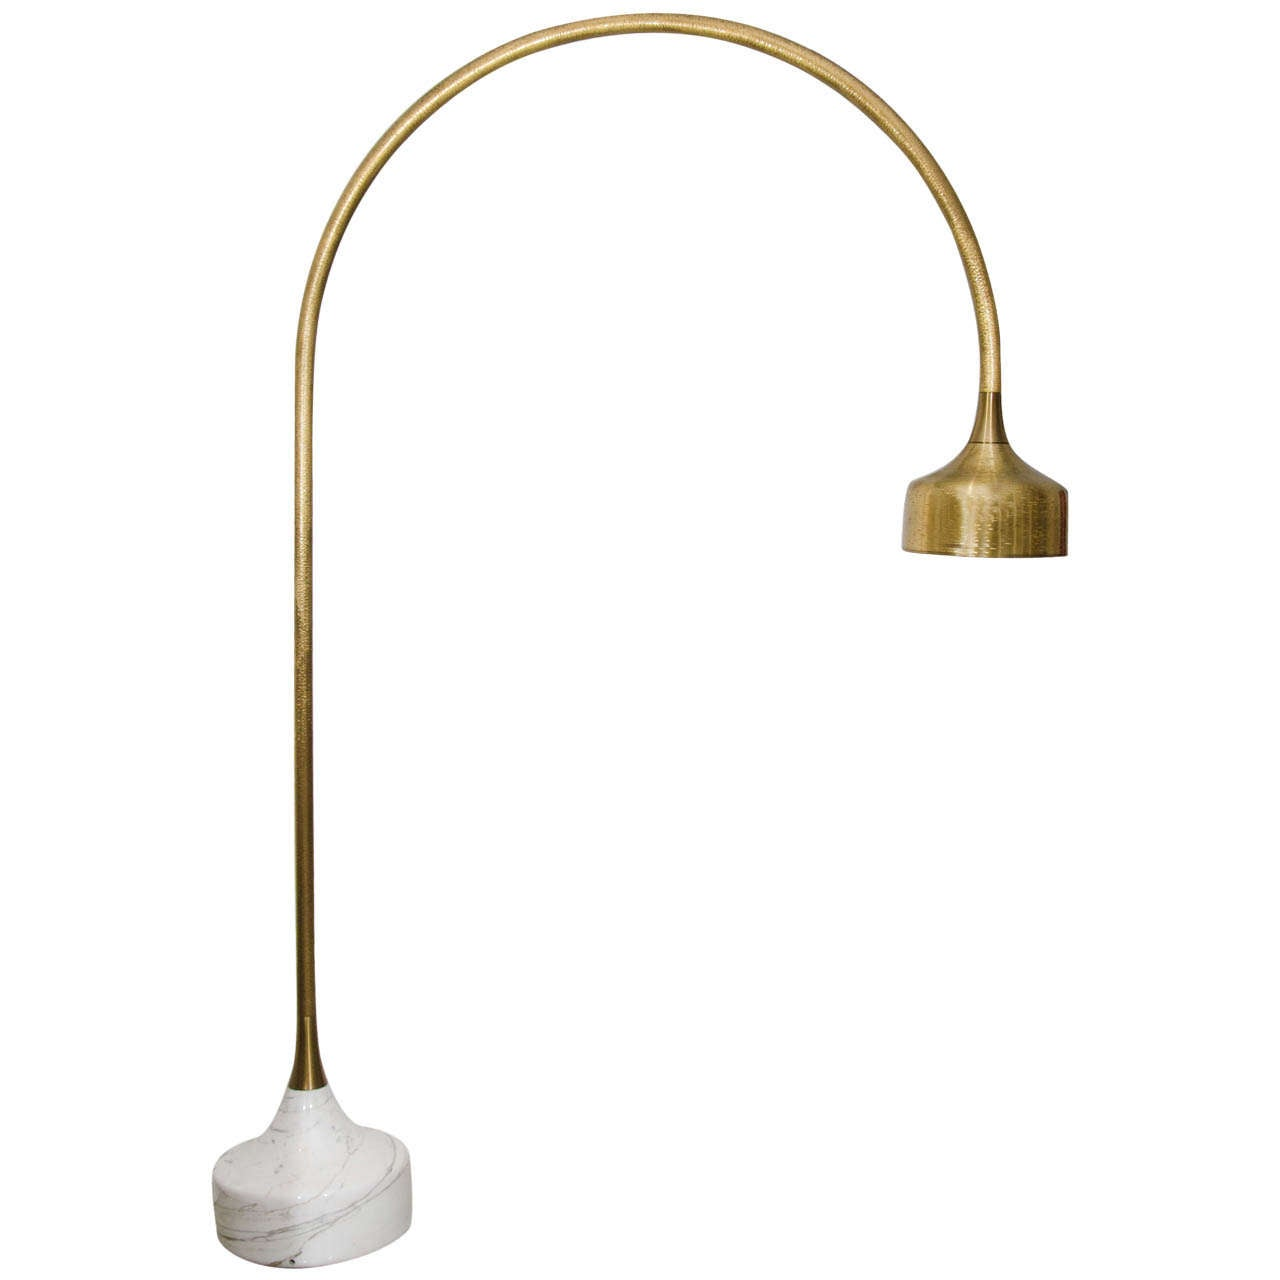 luciano frigerio marble base golden arc floor lamp for sale at 1stdibs. Black Bedroom Furniture Sets. Home Design Ideas